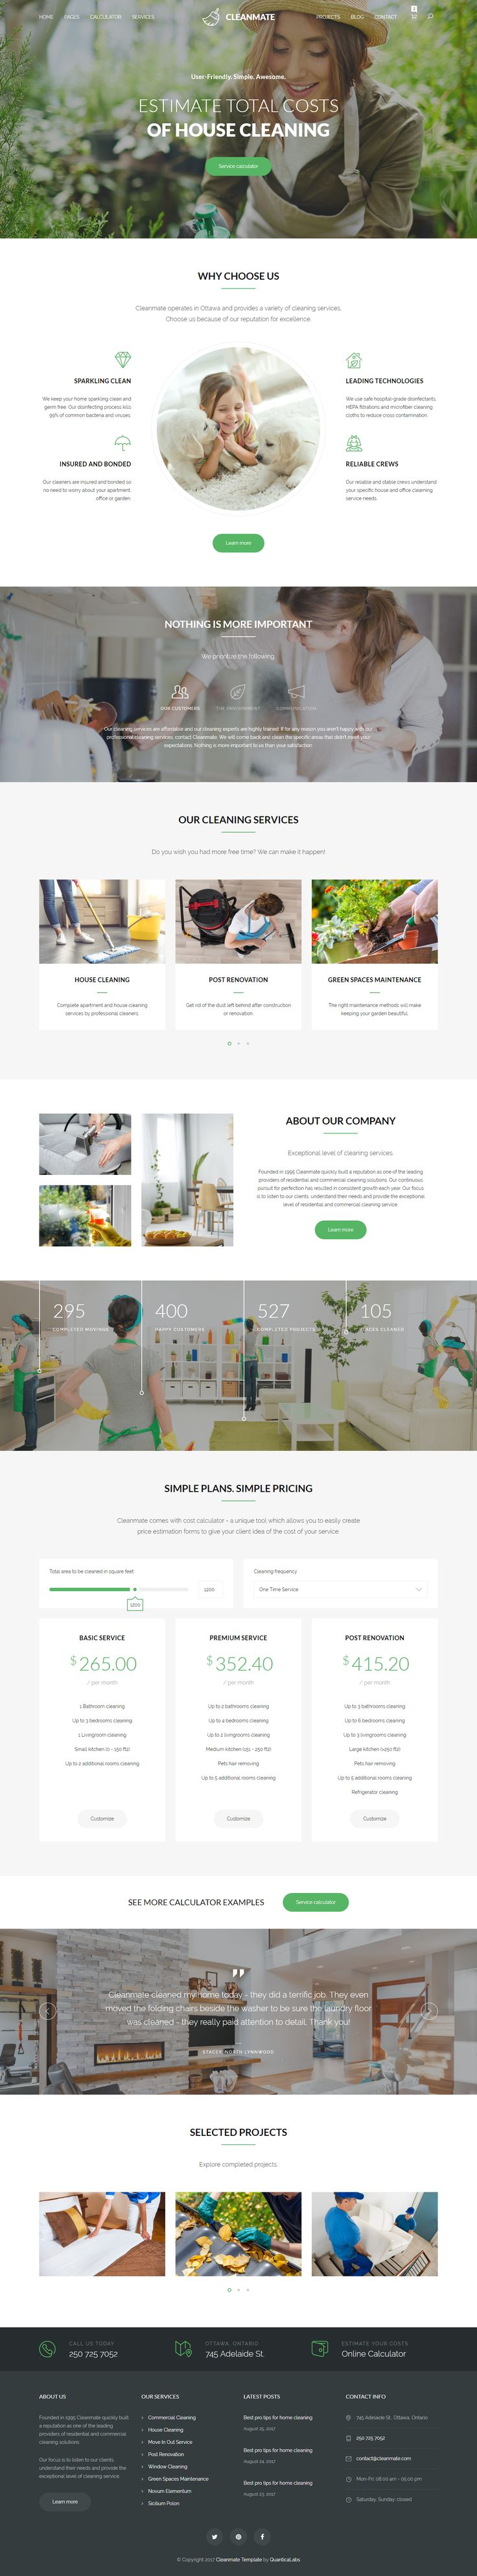 Cleanmate cleaning company maid gardening template